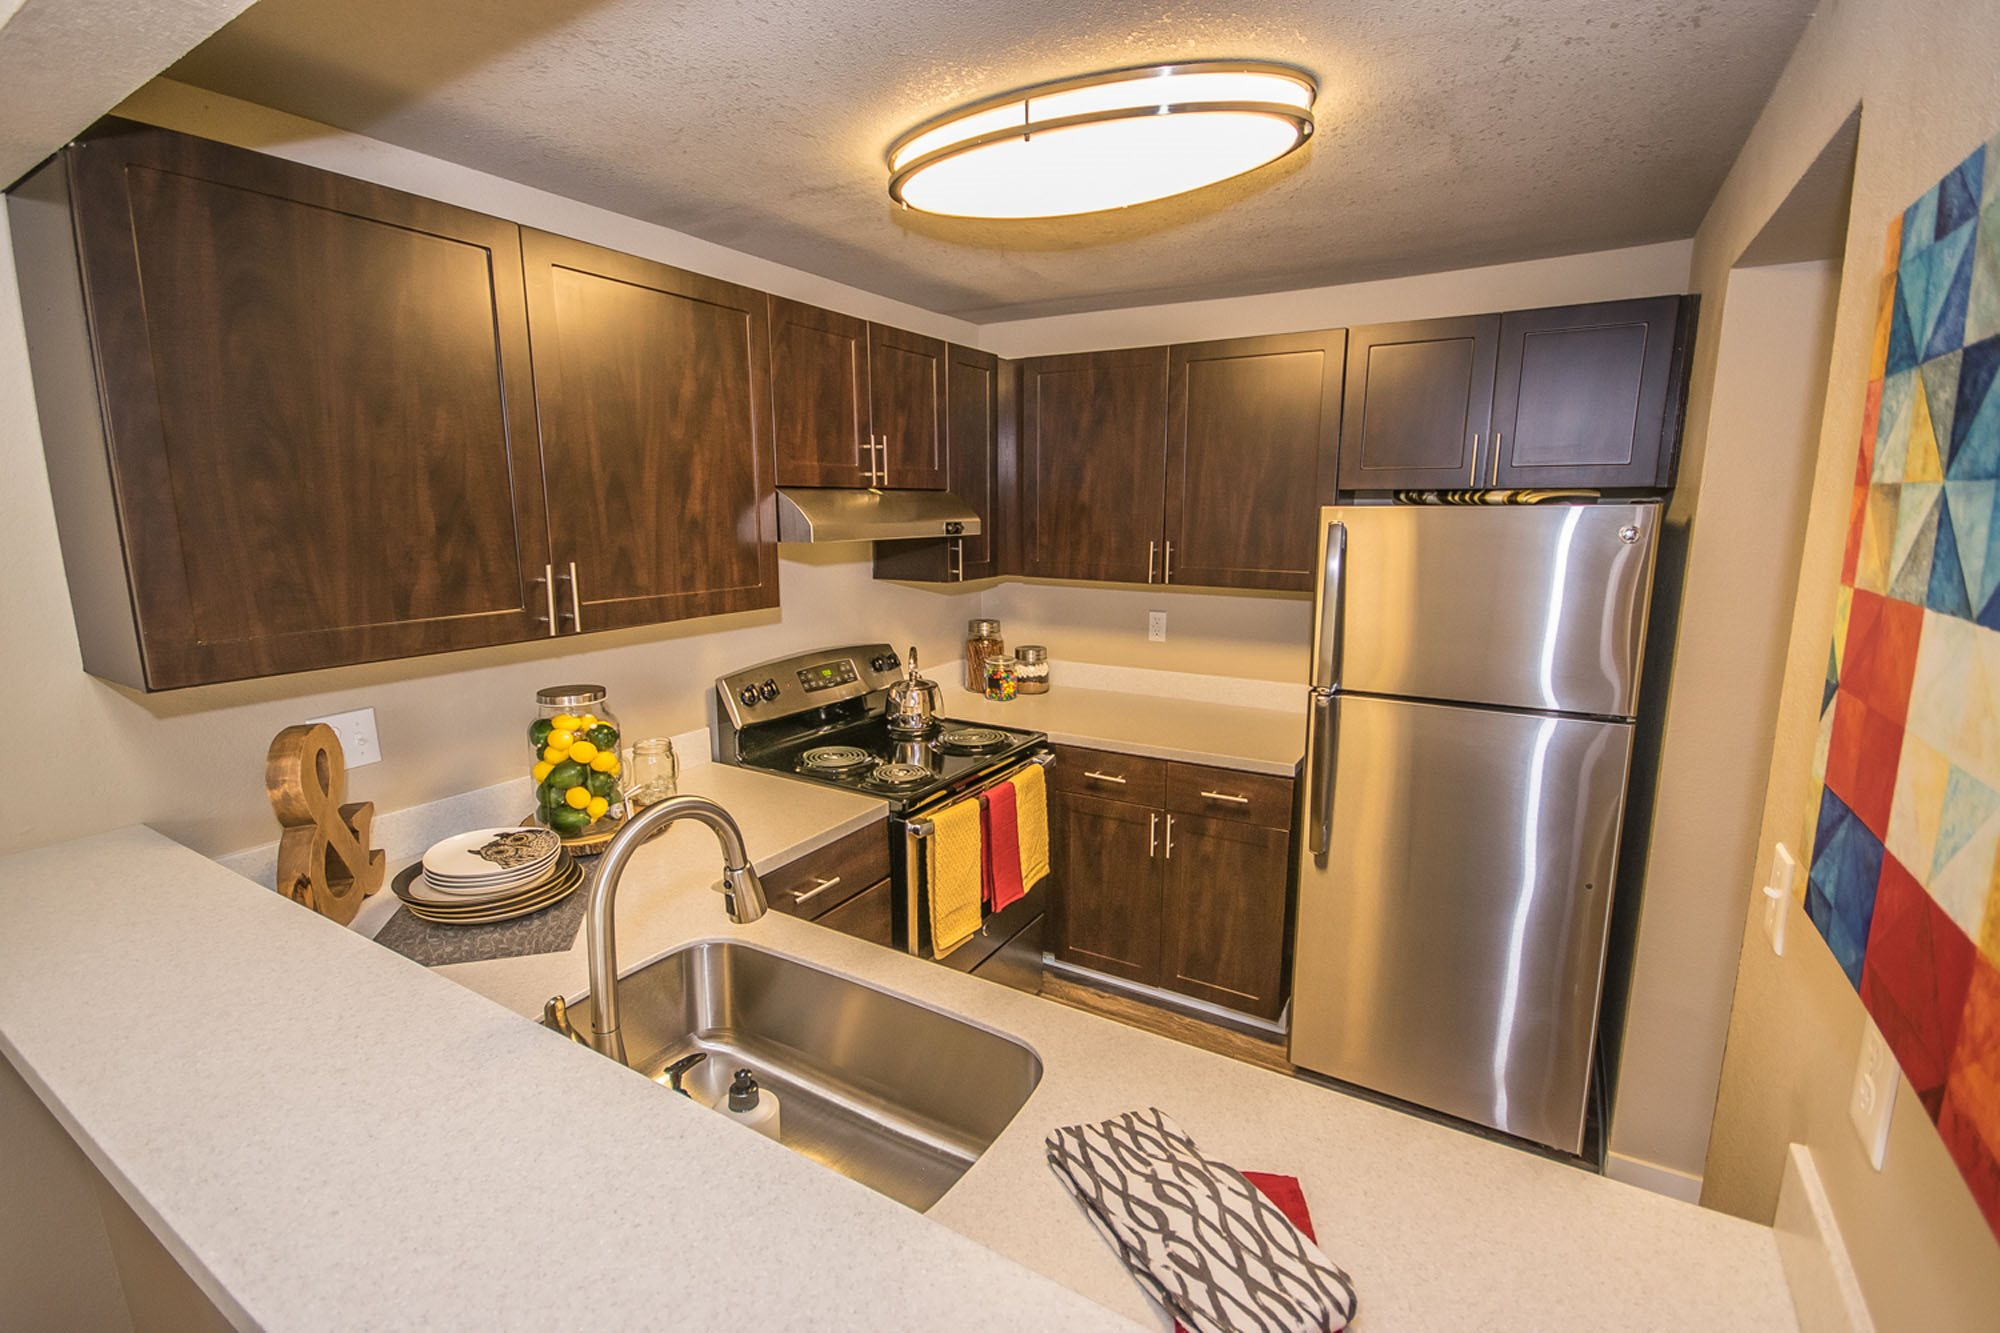 Stainless Steel Appliances at The Fairways Apartments, Tacoma, WA,98422